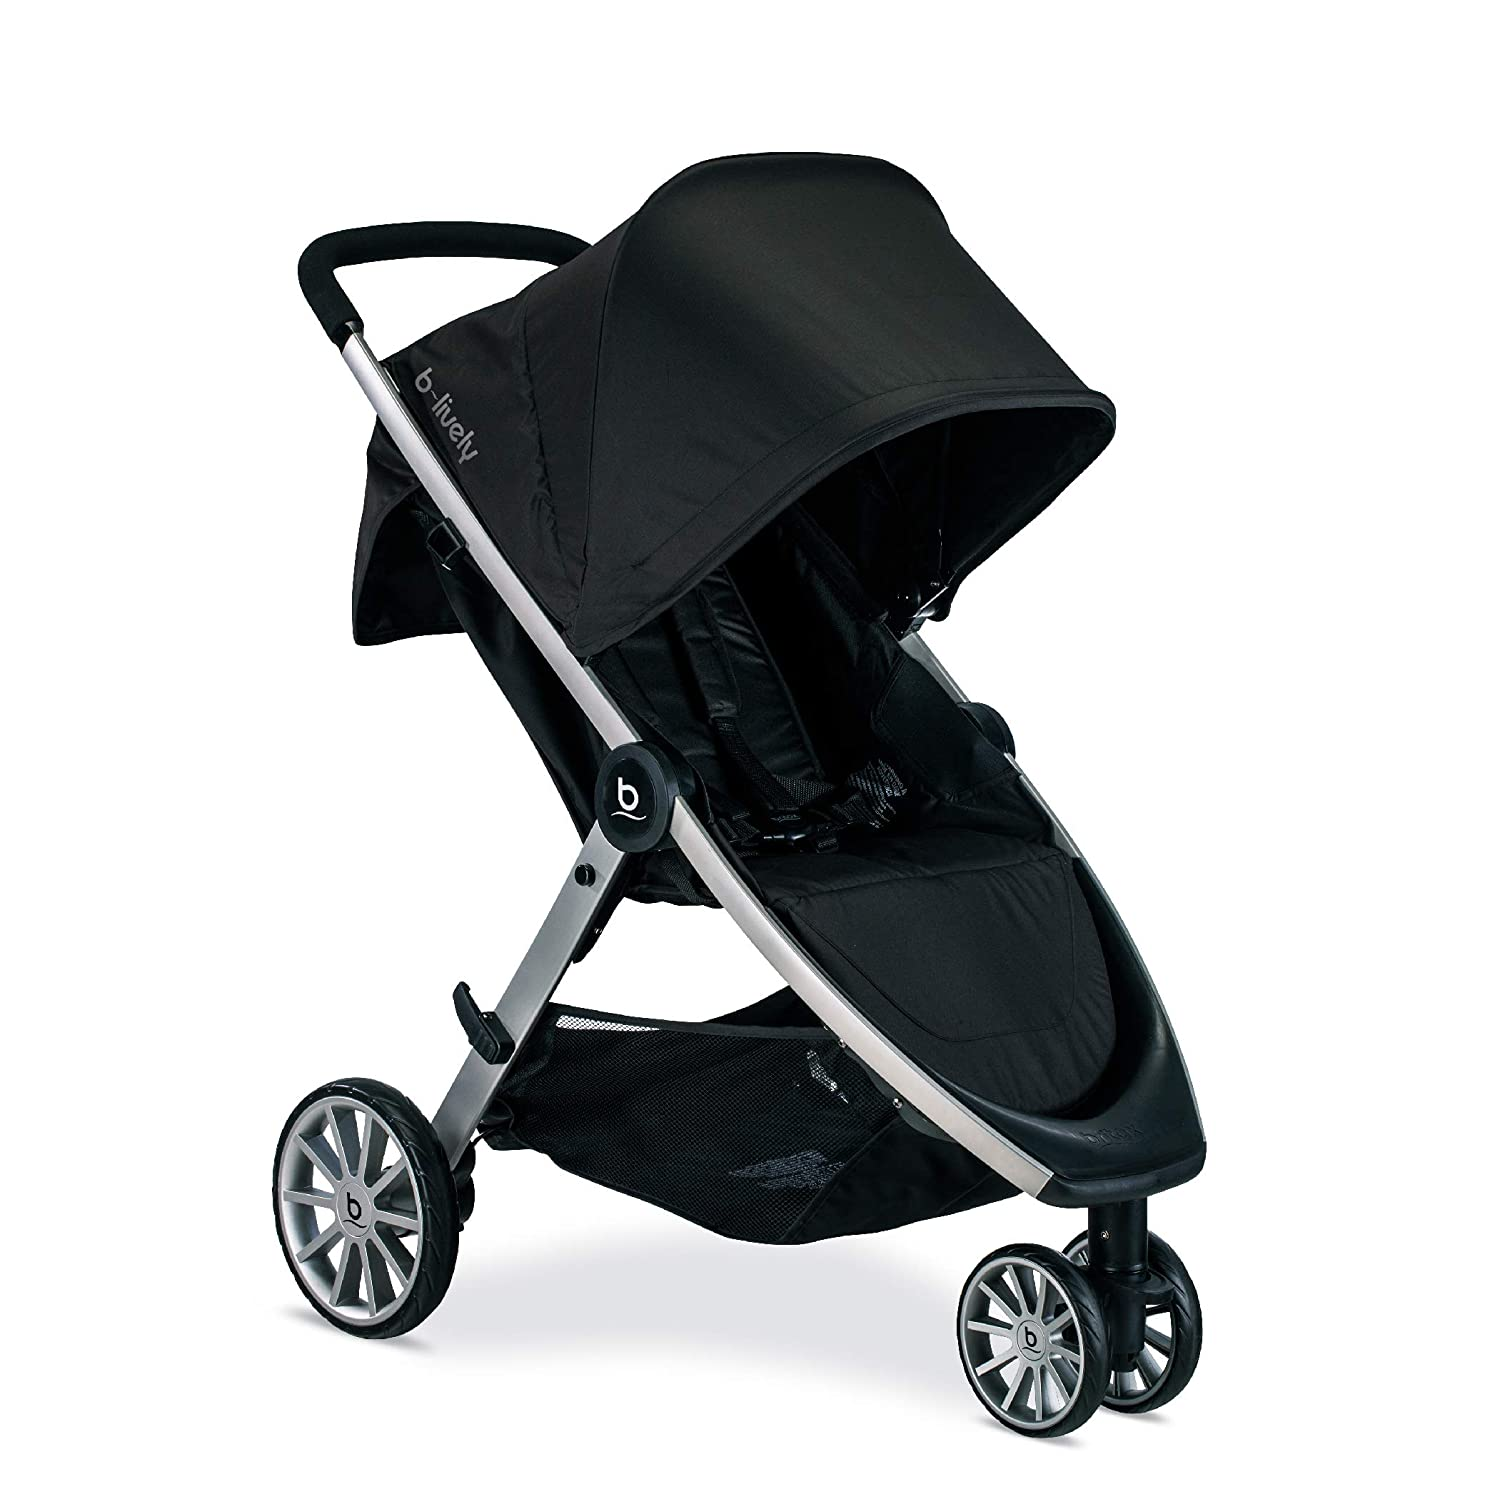 Britax B-Lively Lightweight Stroller, Raven - One Hand Fold, Large UV50+ Canopy, All Wheel Suspension